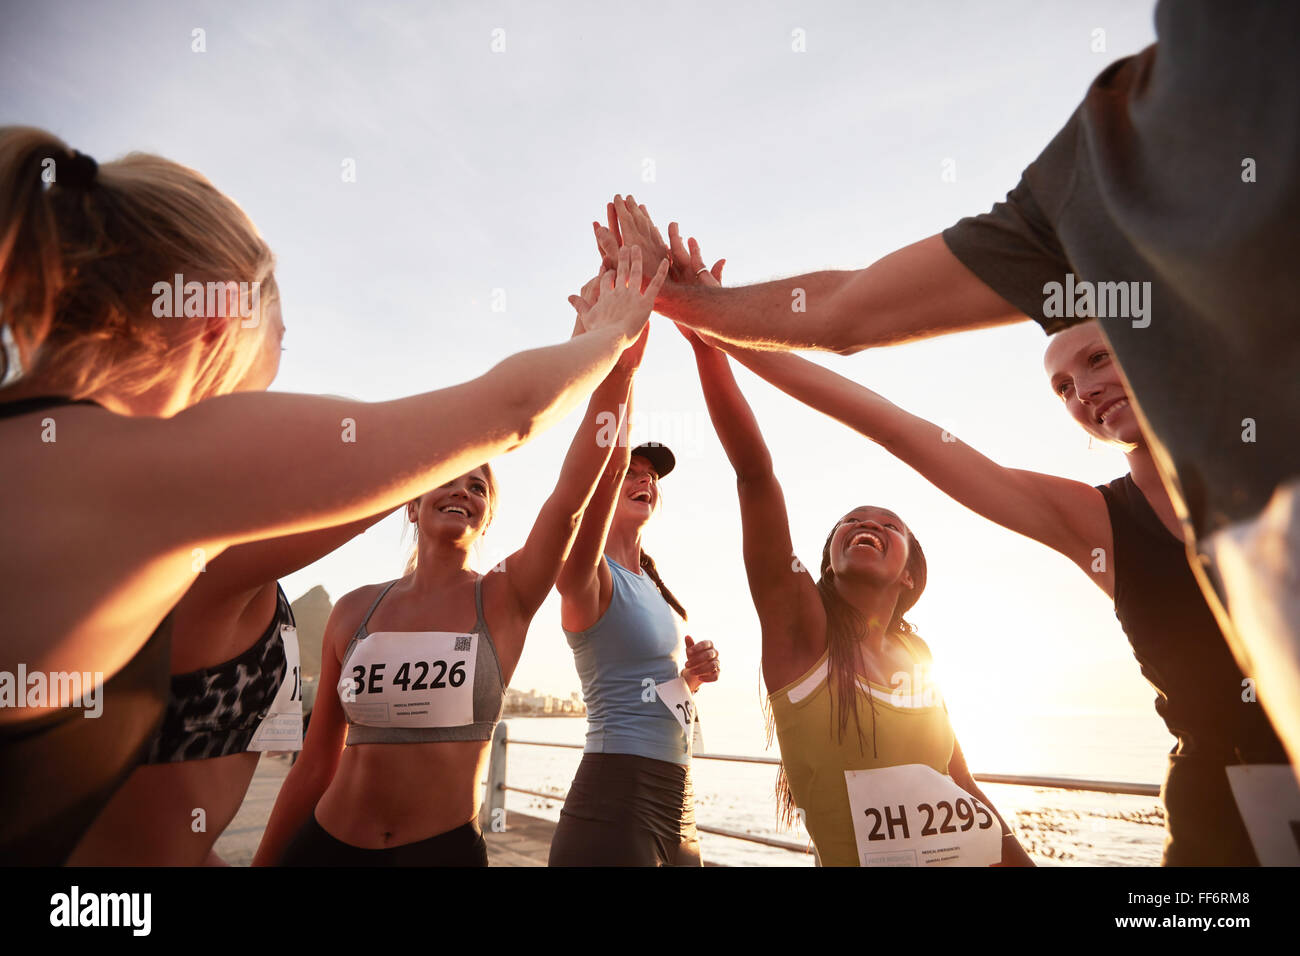 Runners high fiving each other after a good training session. Group of athletes give each other high five after - Stock Image